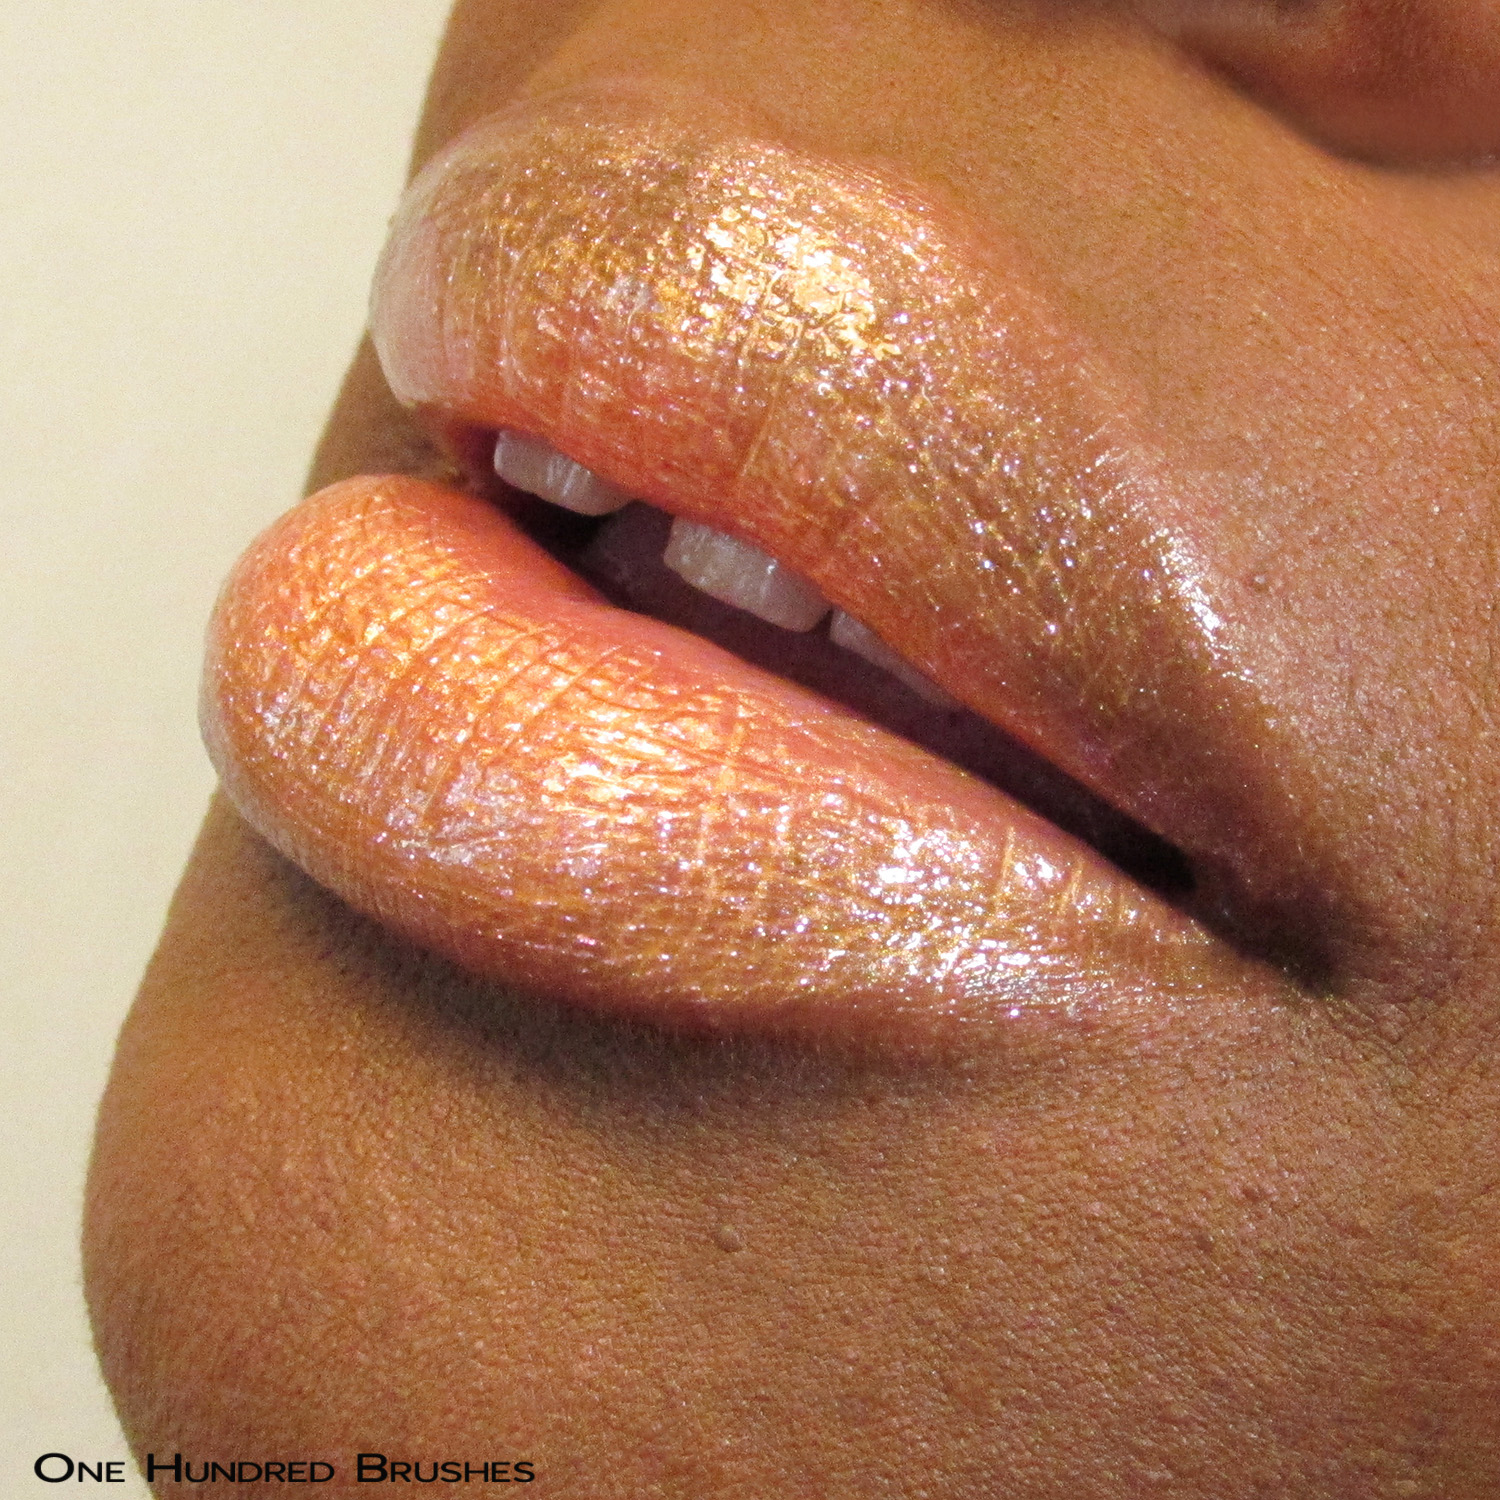 Introspection - Lip Gloss - Vapid Lacquer May 2019